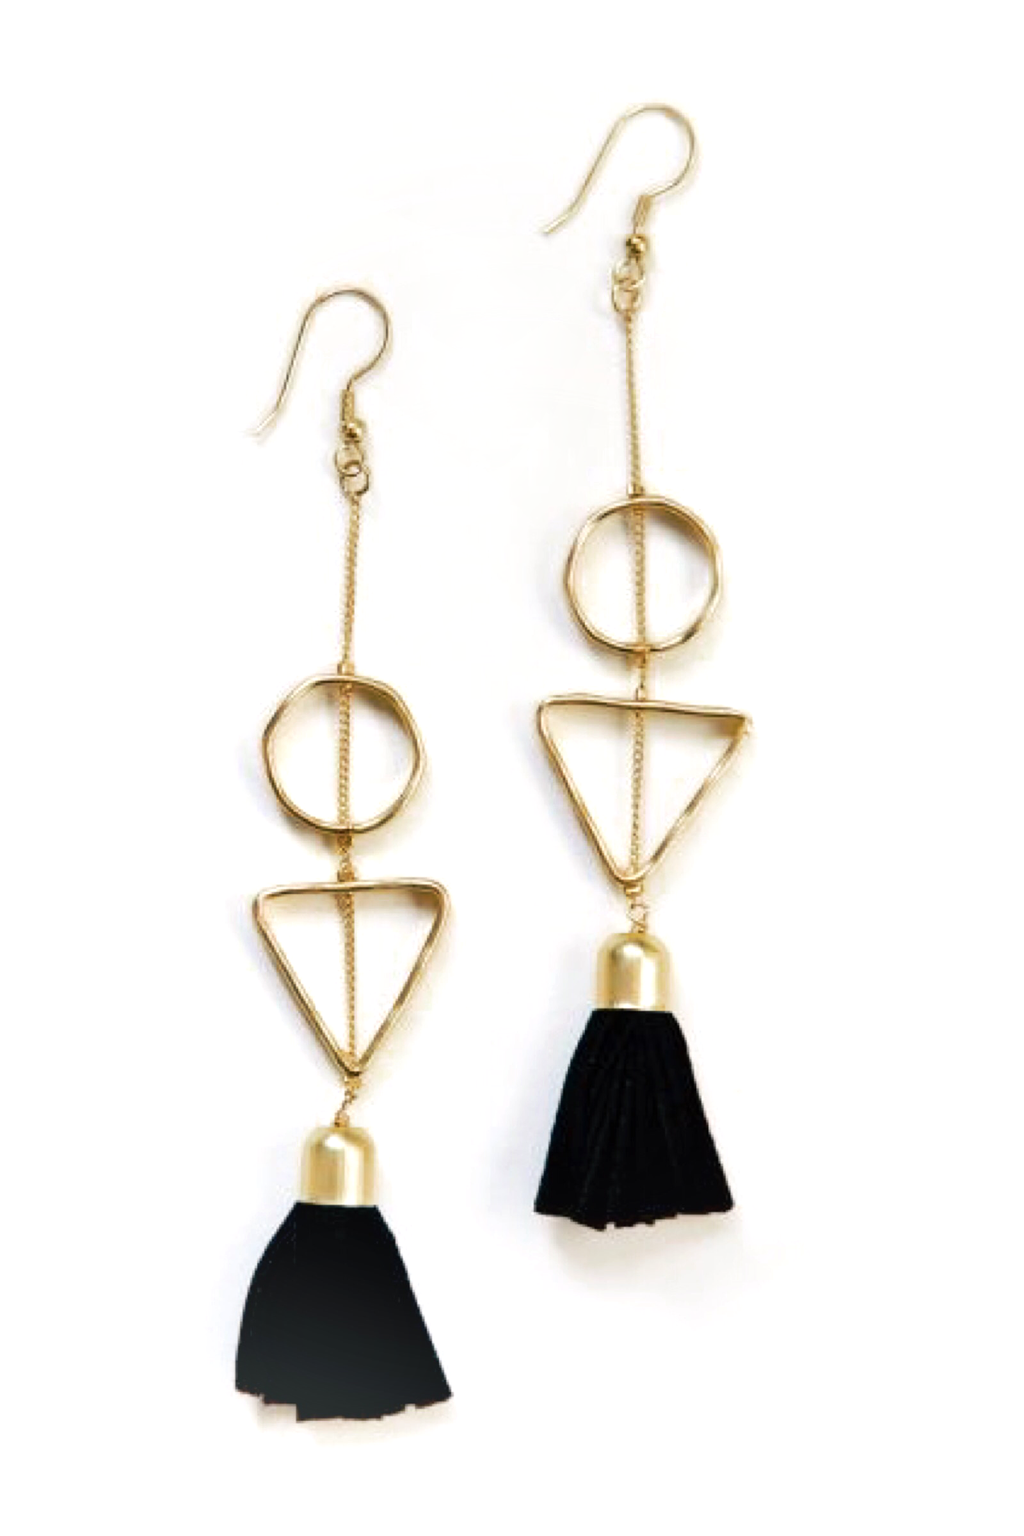 Black + Gold Suede Tassel Earrings - ROSE MADE SHOP